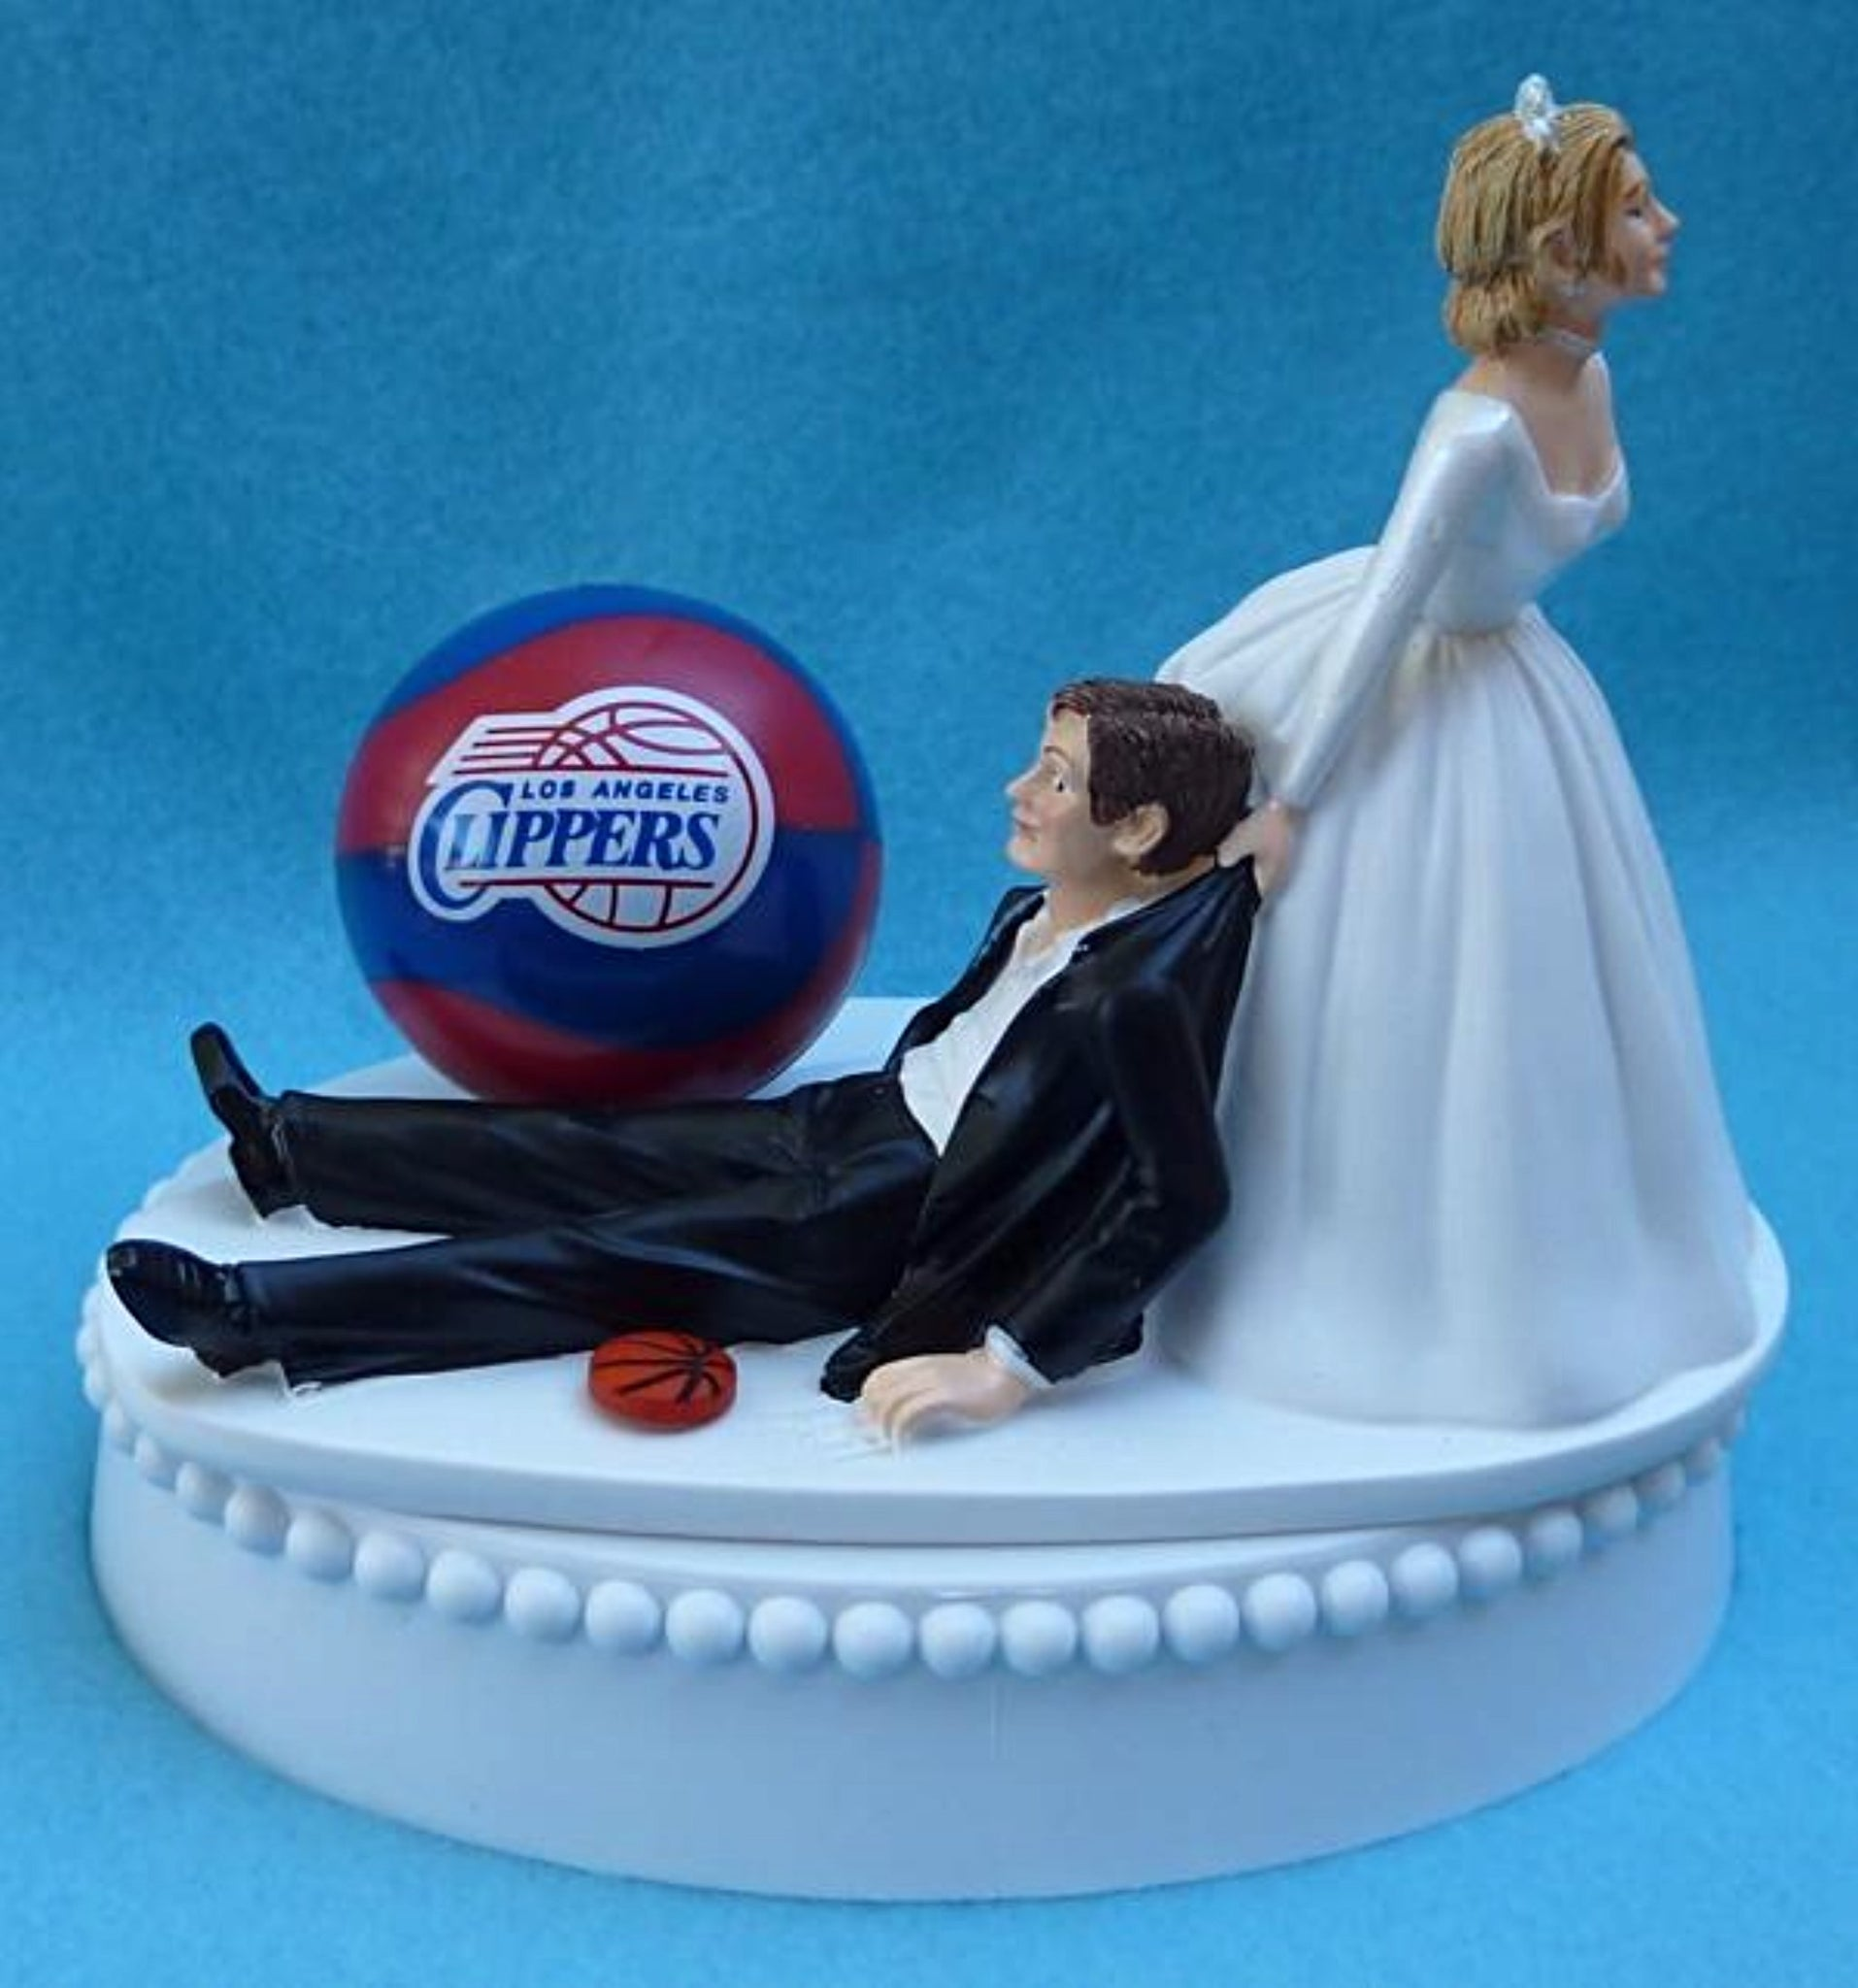 Los Angeles Clippers wedding cake topper LA L.A. NBA basketball fans fun bride drags groom humorous reception gift Fun Wedding Things